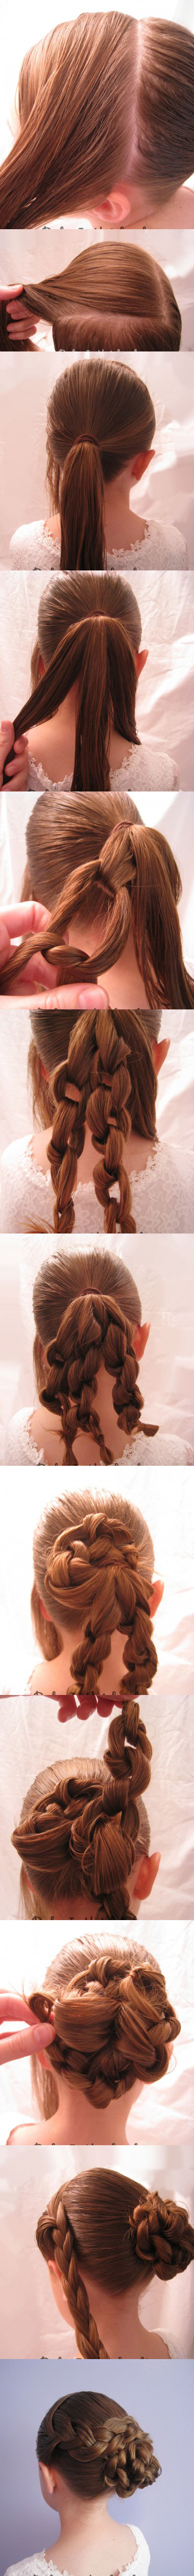 Oh-So-Simple Bun Hairstyles Tutorials: Braided Knotted Bun